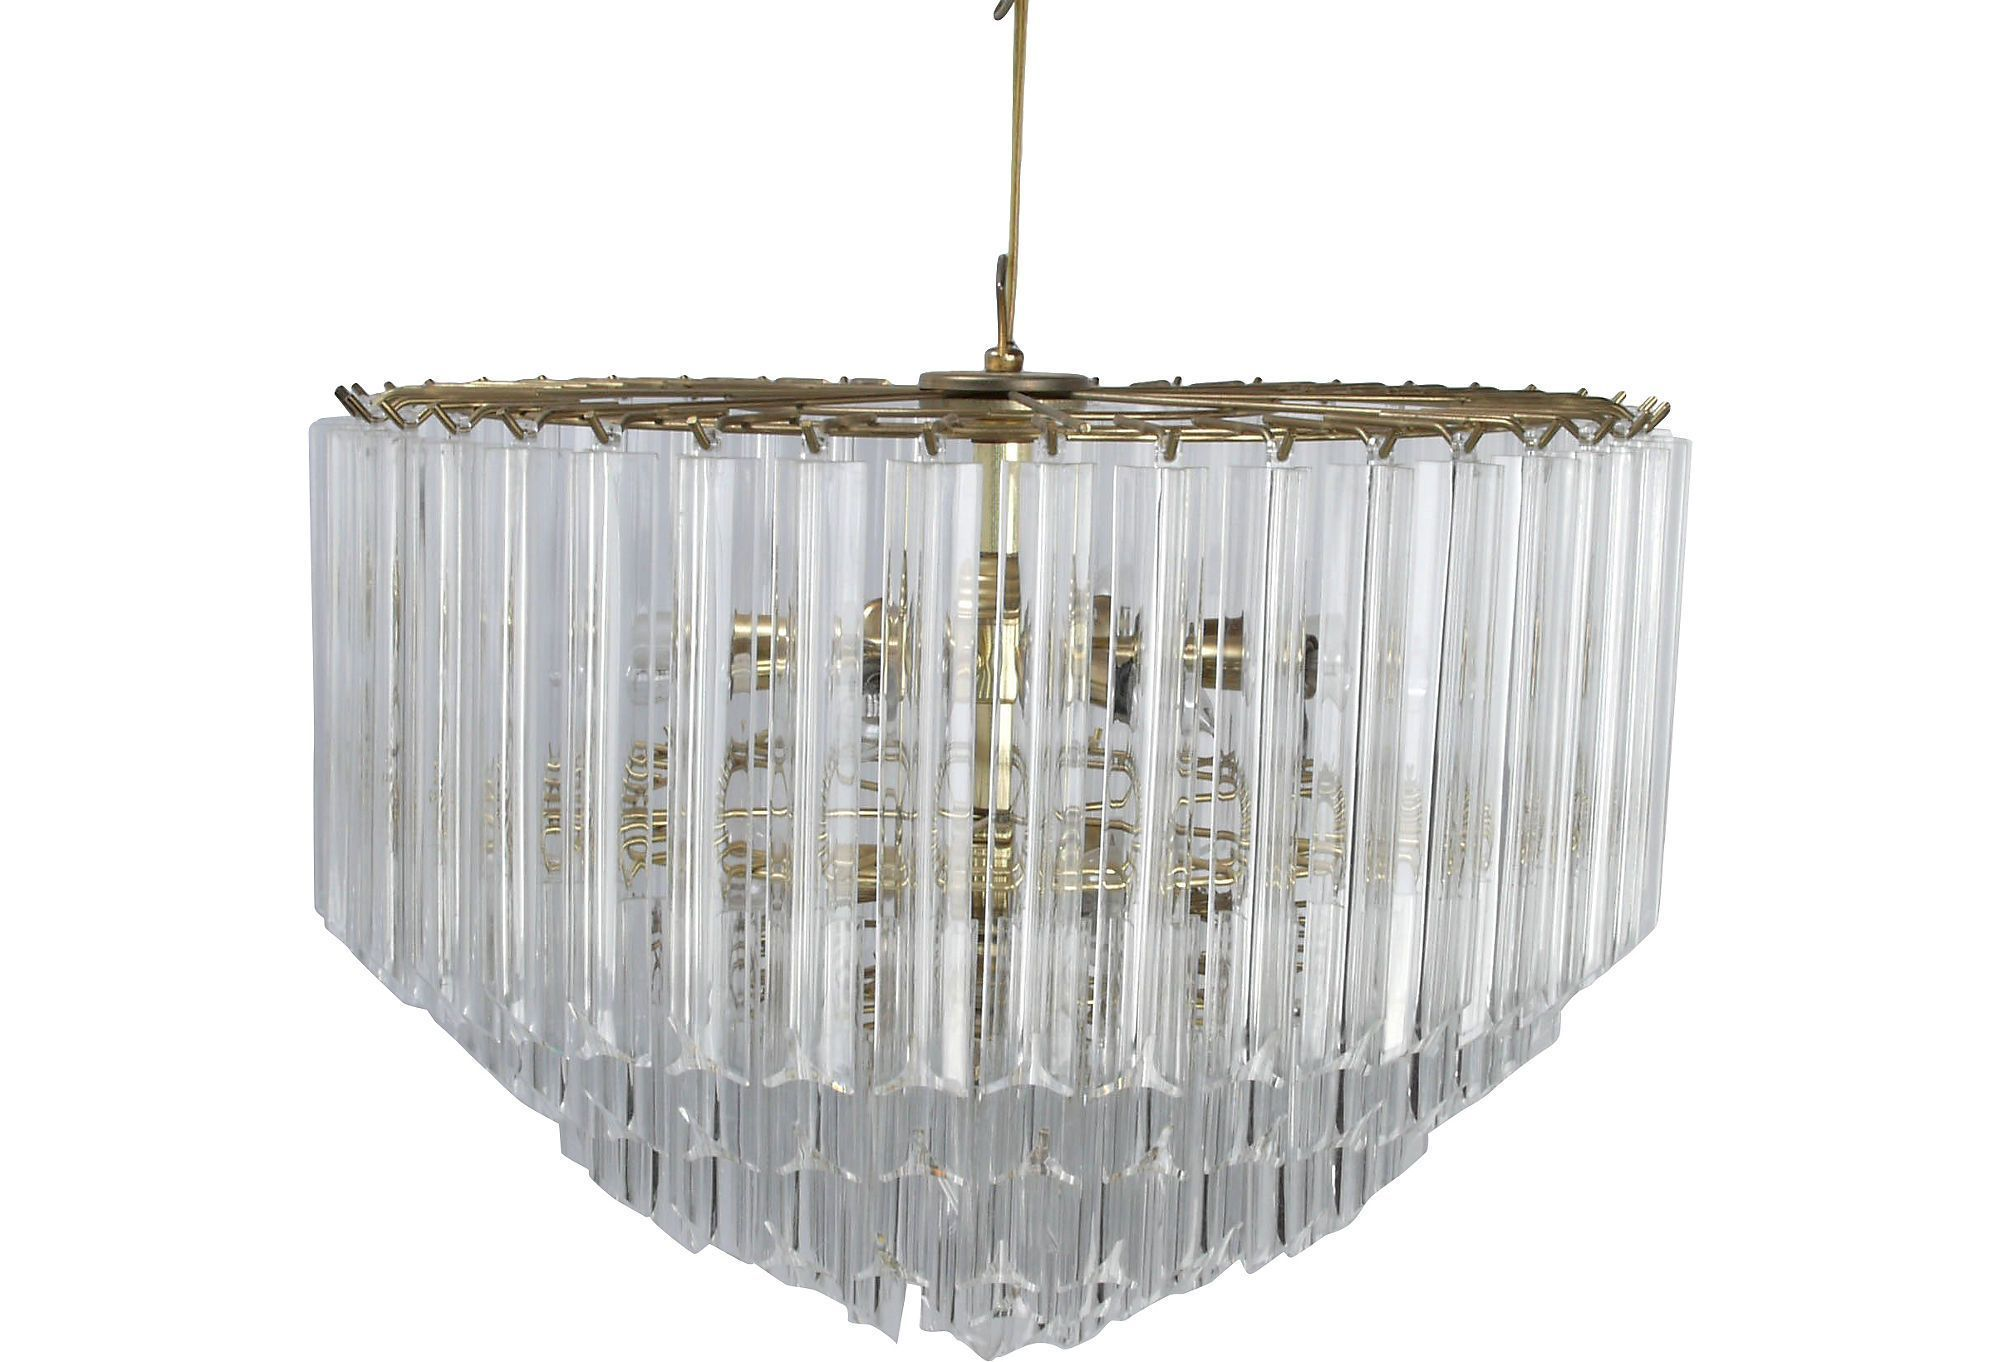 5 tier brass and lucite chandelier one kings lane lighting ideas 5 tier brass and lucite chandelier one kings lane arubaitofo Images